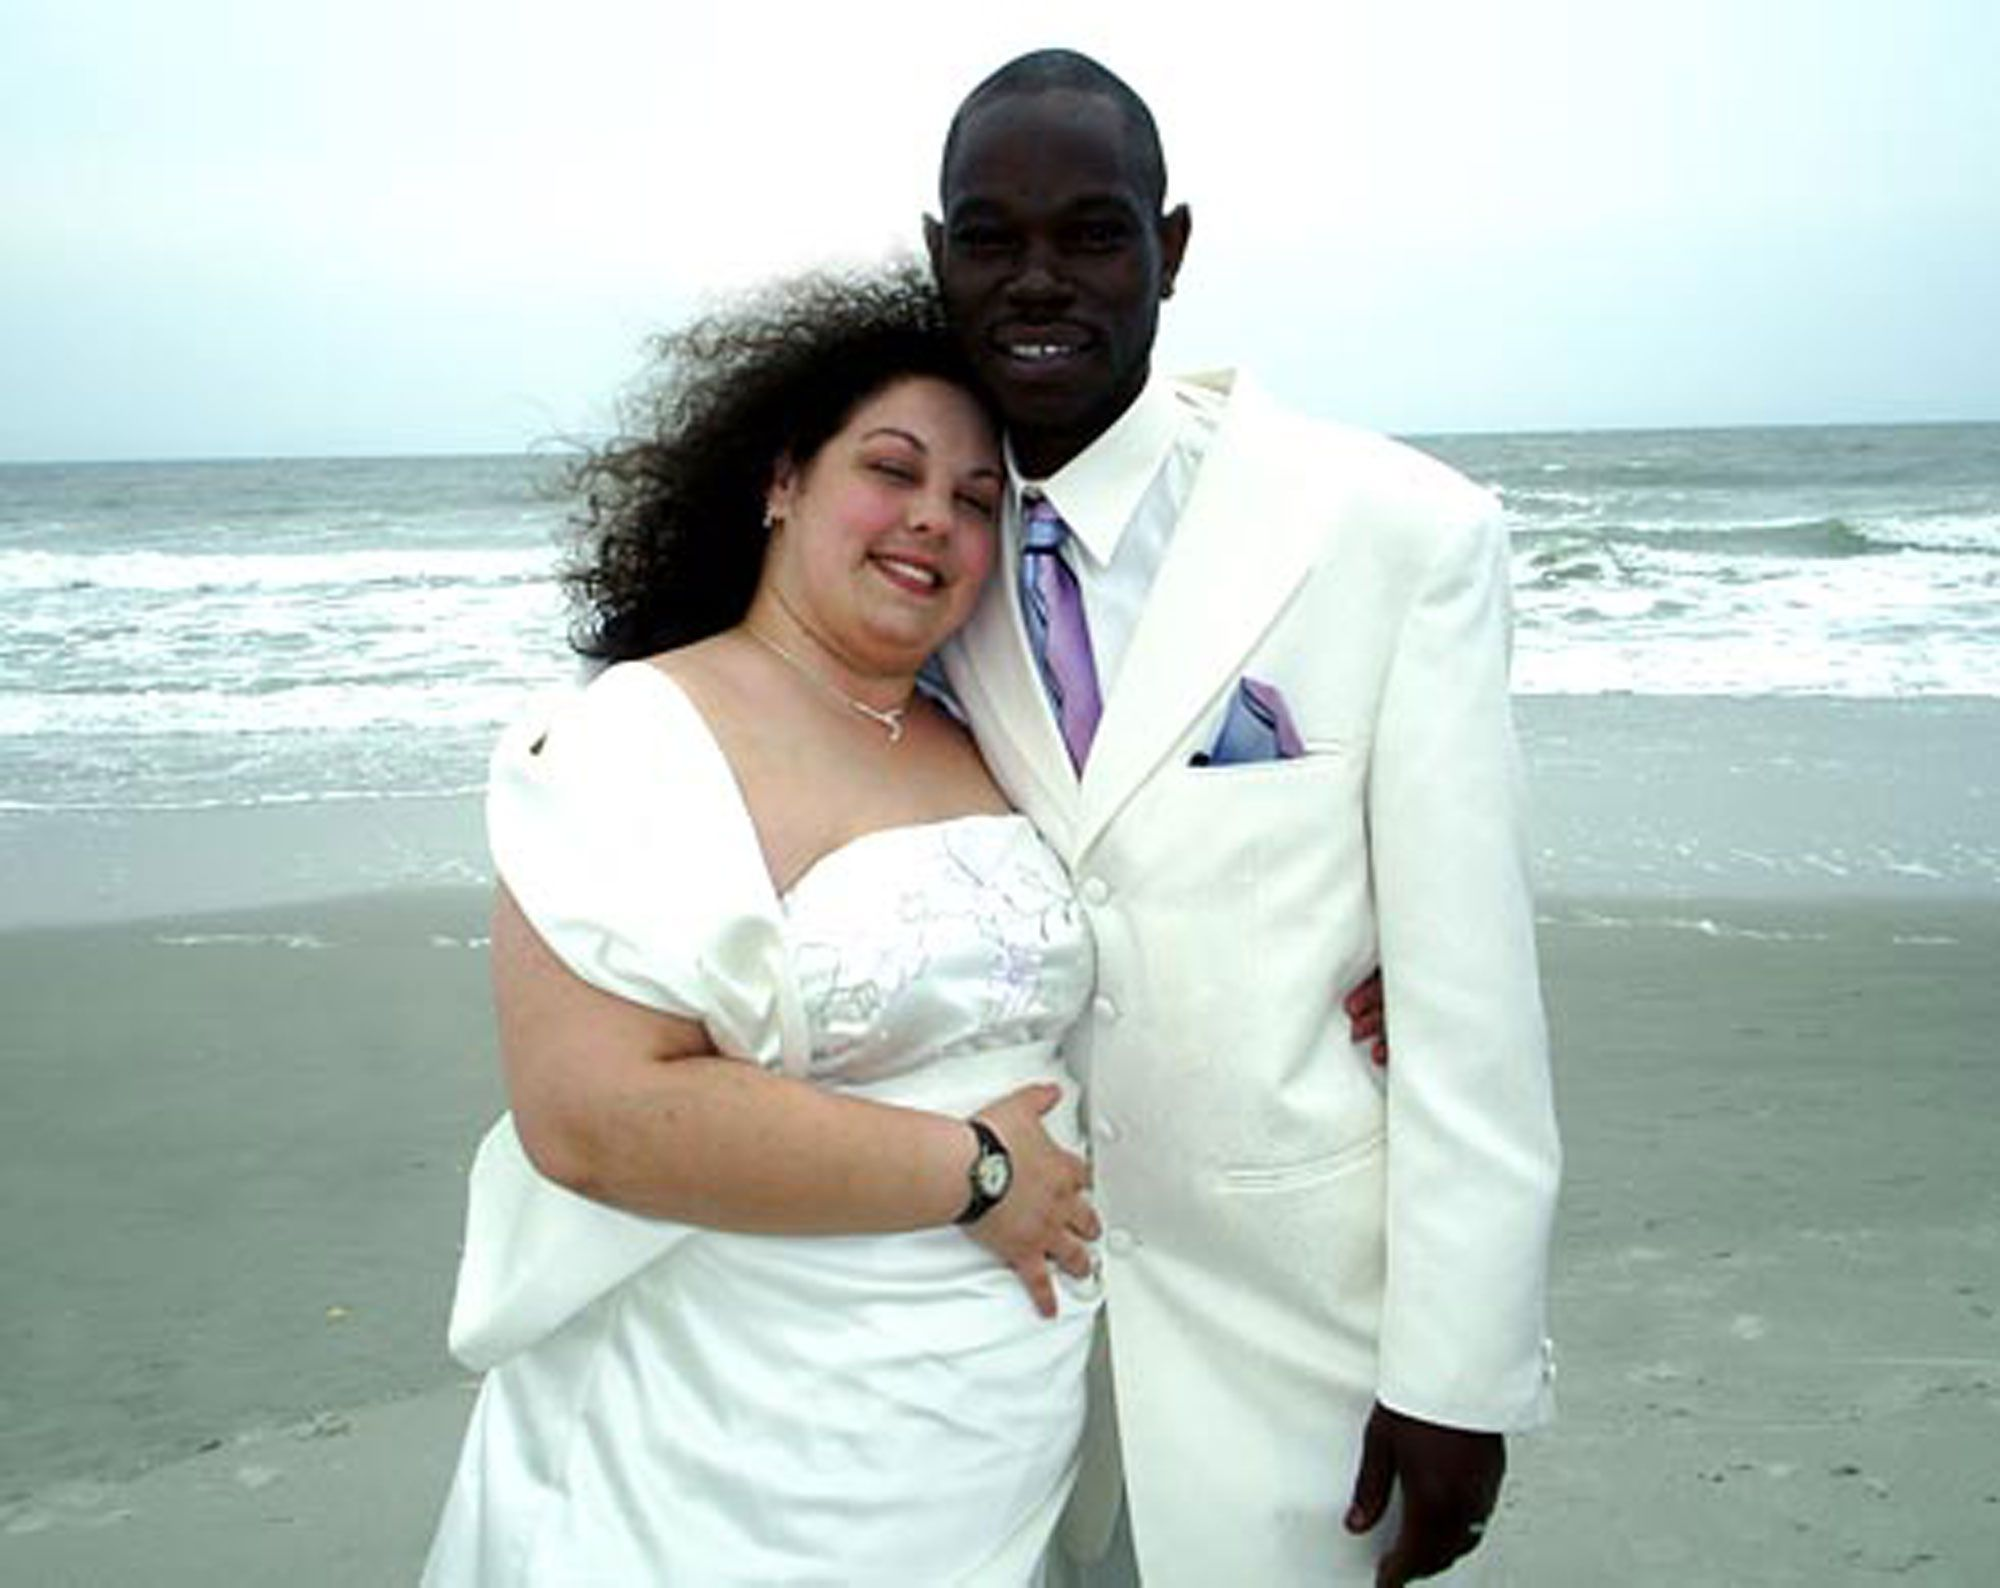 Inmates marriage female looking for locate an